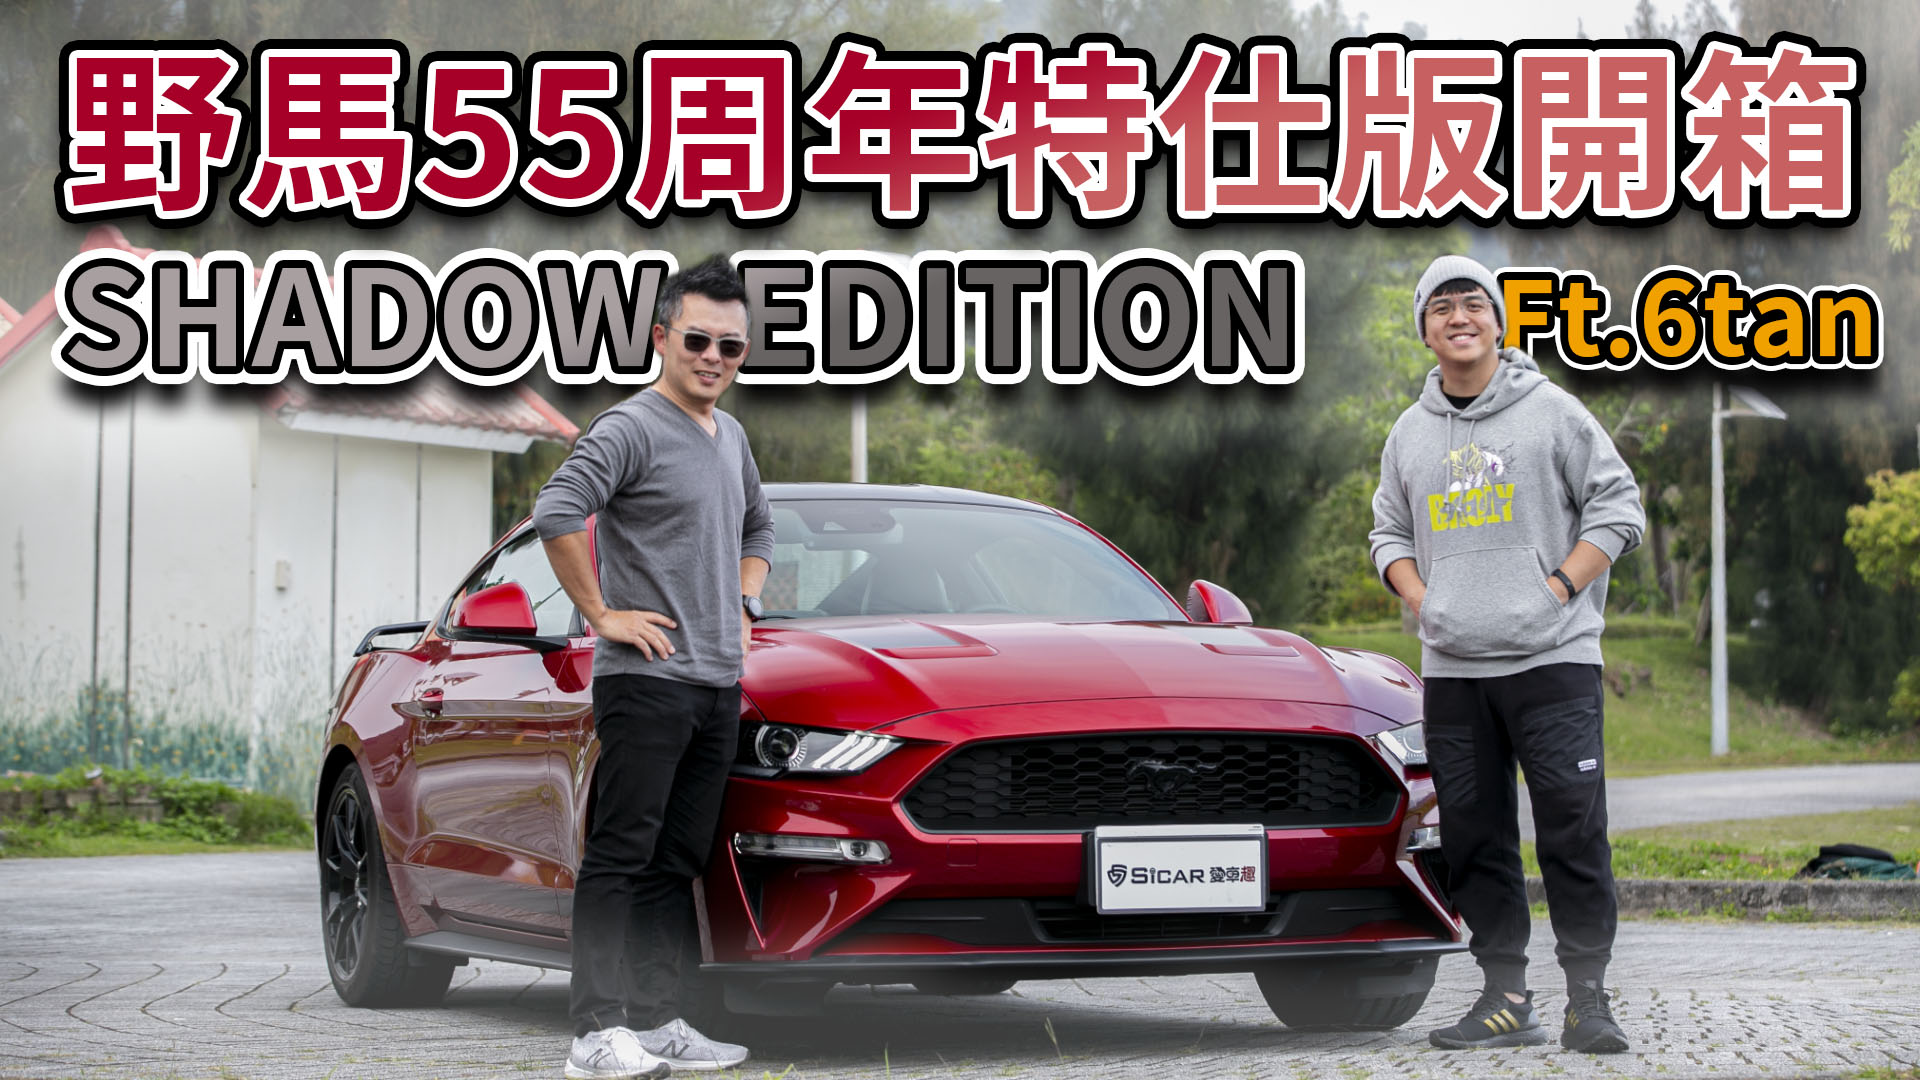 【老爹出任務】野馬55周年特仕版開箱試駕2020Ford Mustang Black Shadow Edition Ft.6tan